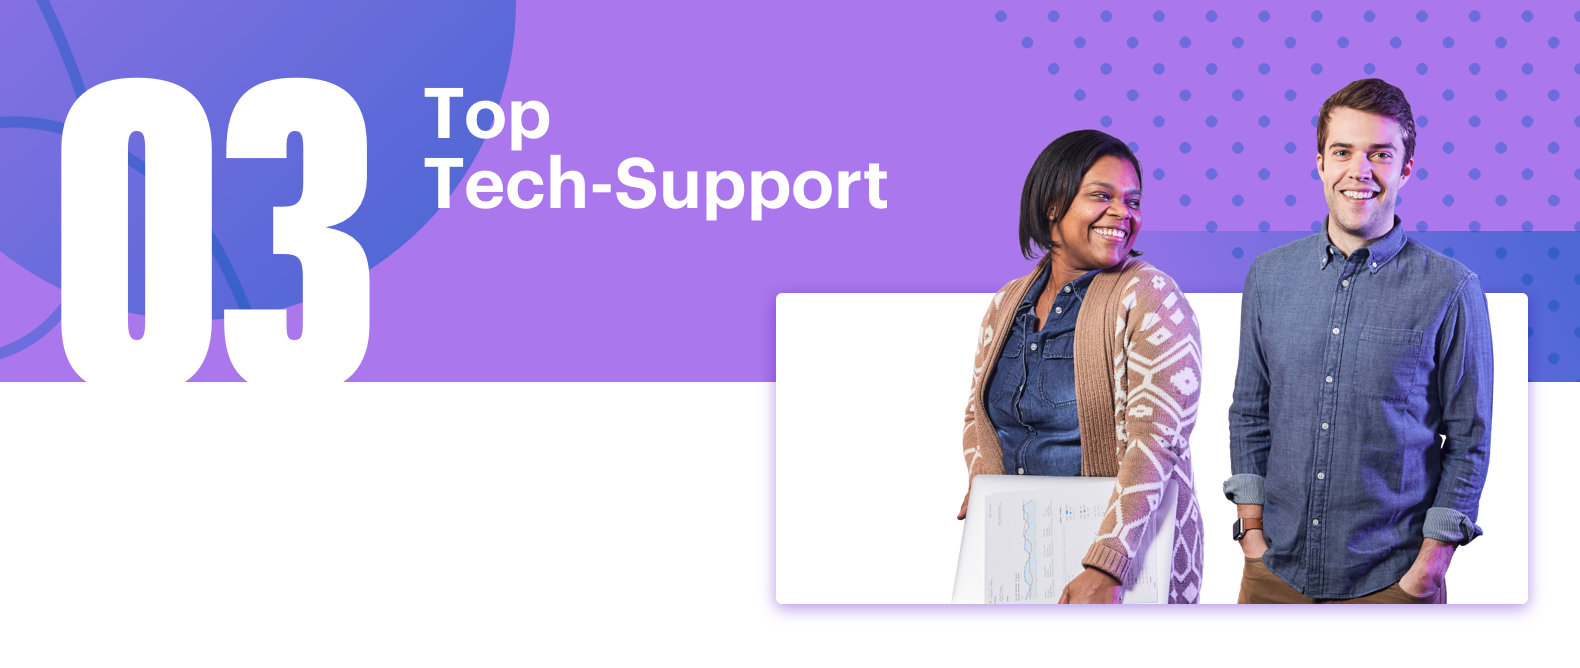 Leadpages Top Tech Support